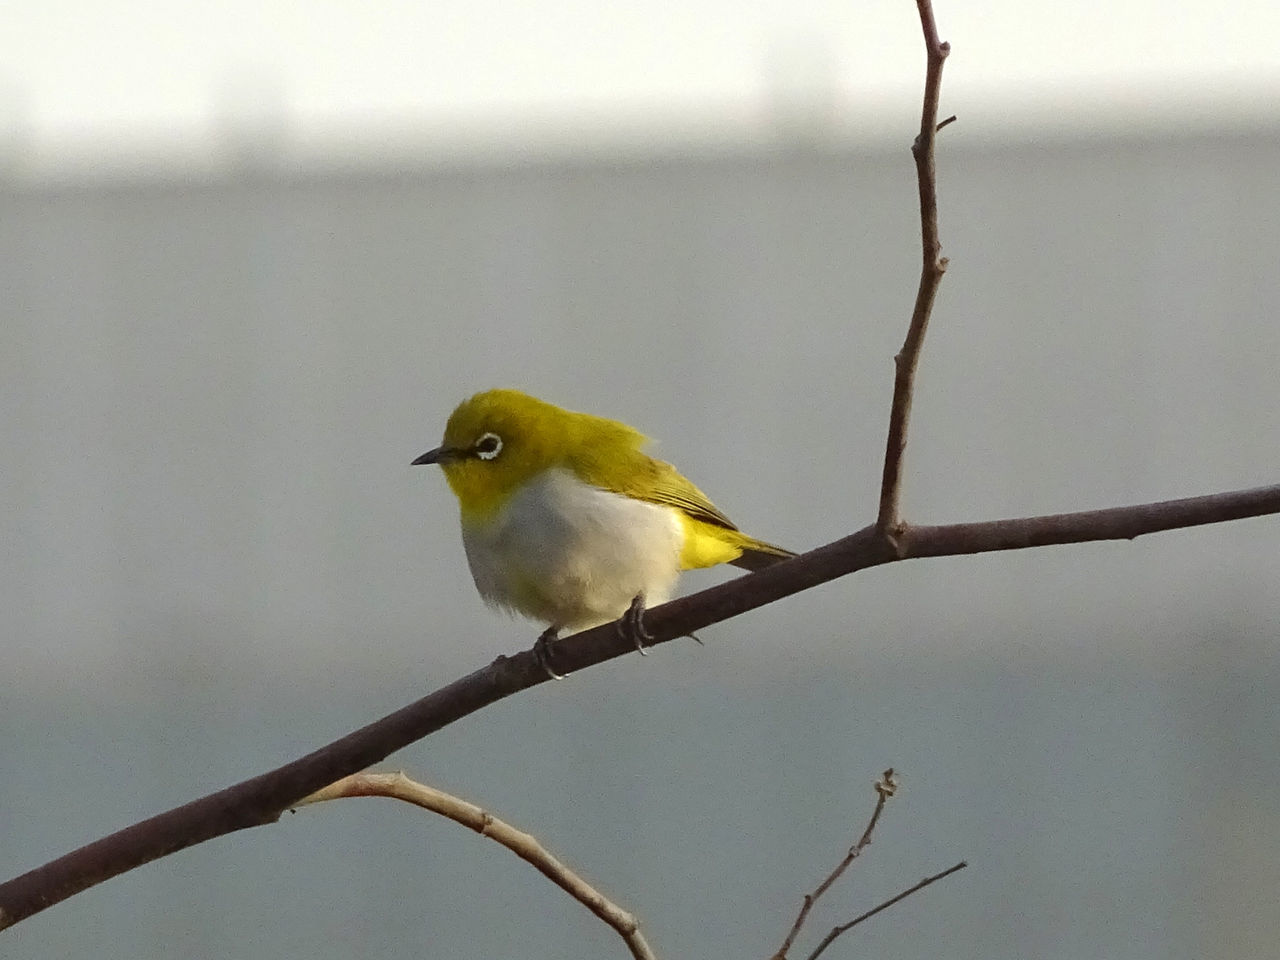 Neighbourhood Birds Animal Themes Animal Wildlife Animals In The Wild Bird Bird In City Bird Photography Close-up Day EyeEmNewHere Focus On Foreground Nature No People One Animal Outdoors Perching Rakeshtiwari Tiny Bird Wildlife & Nature Wildlife Photography Yellow Bird